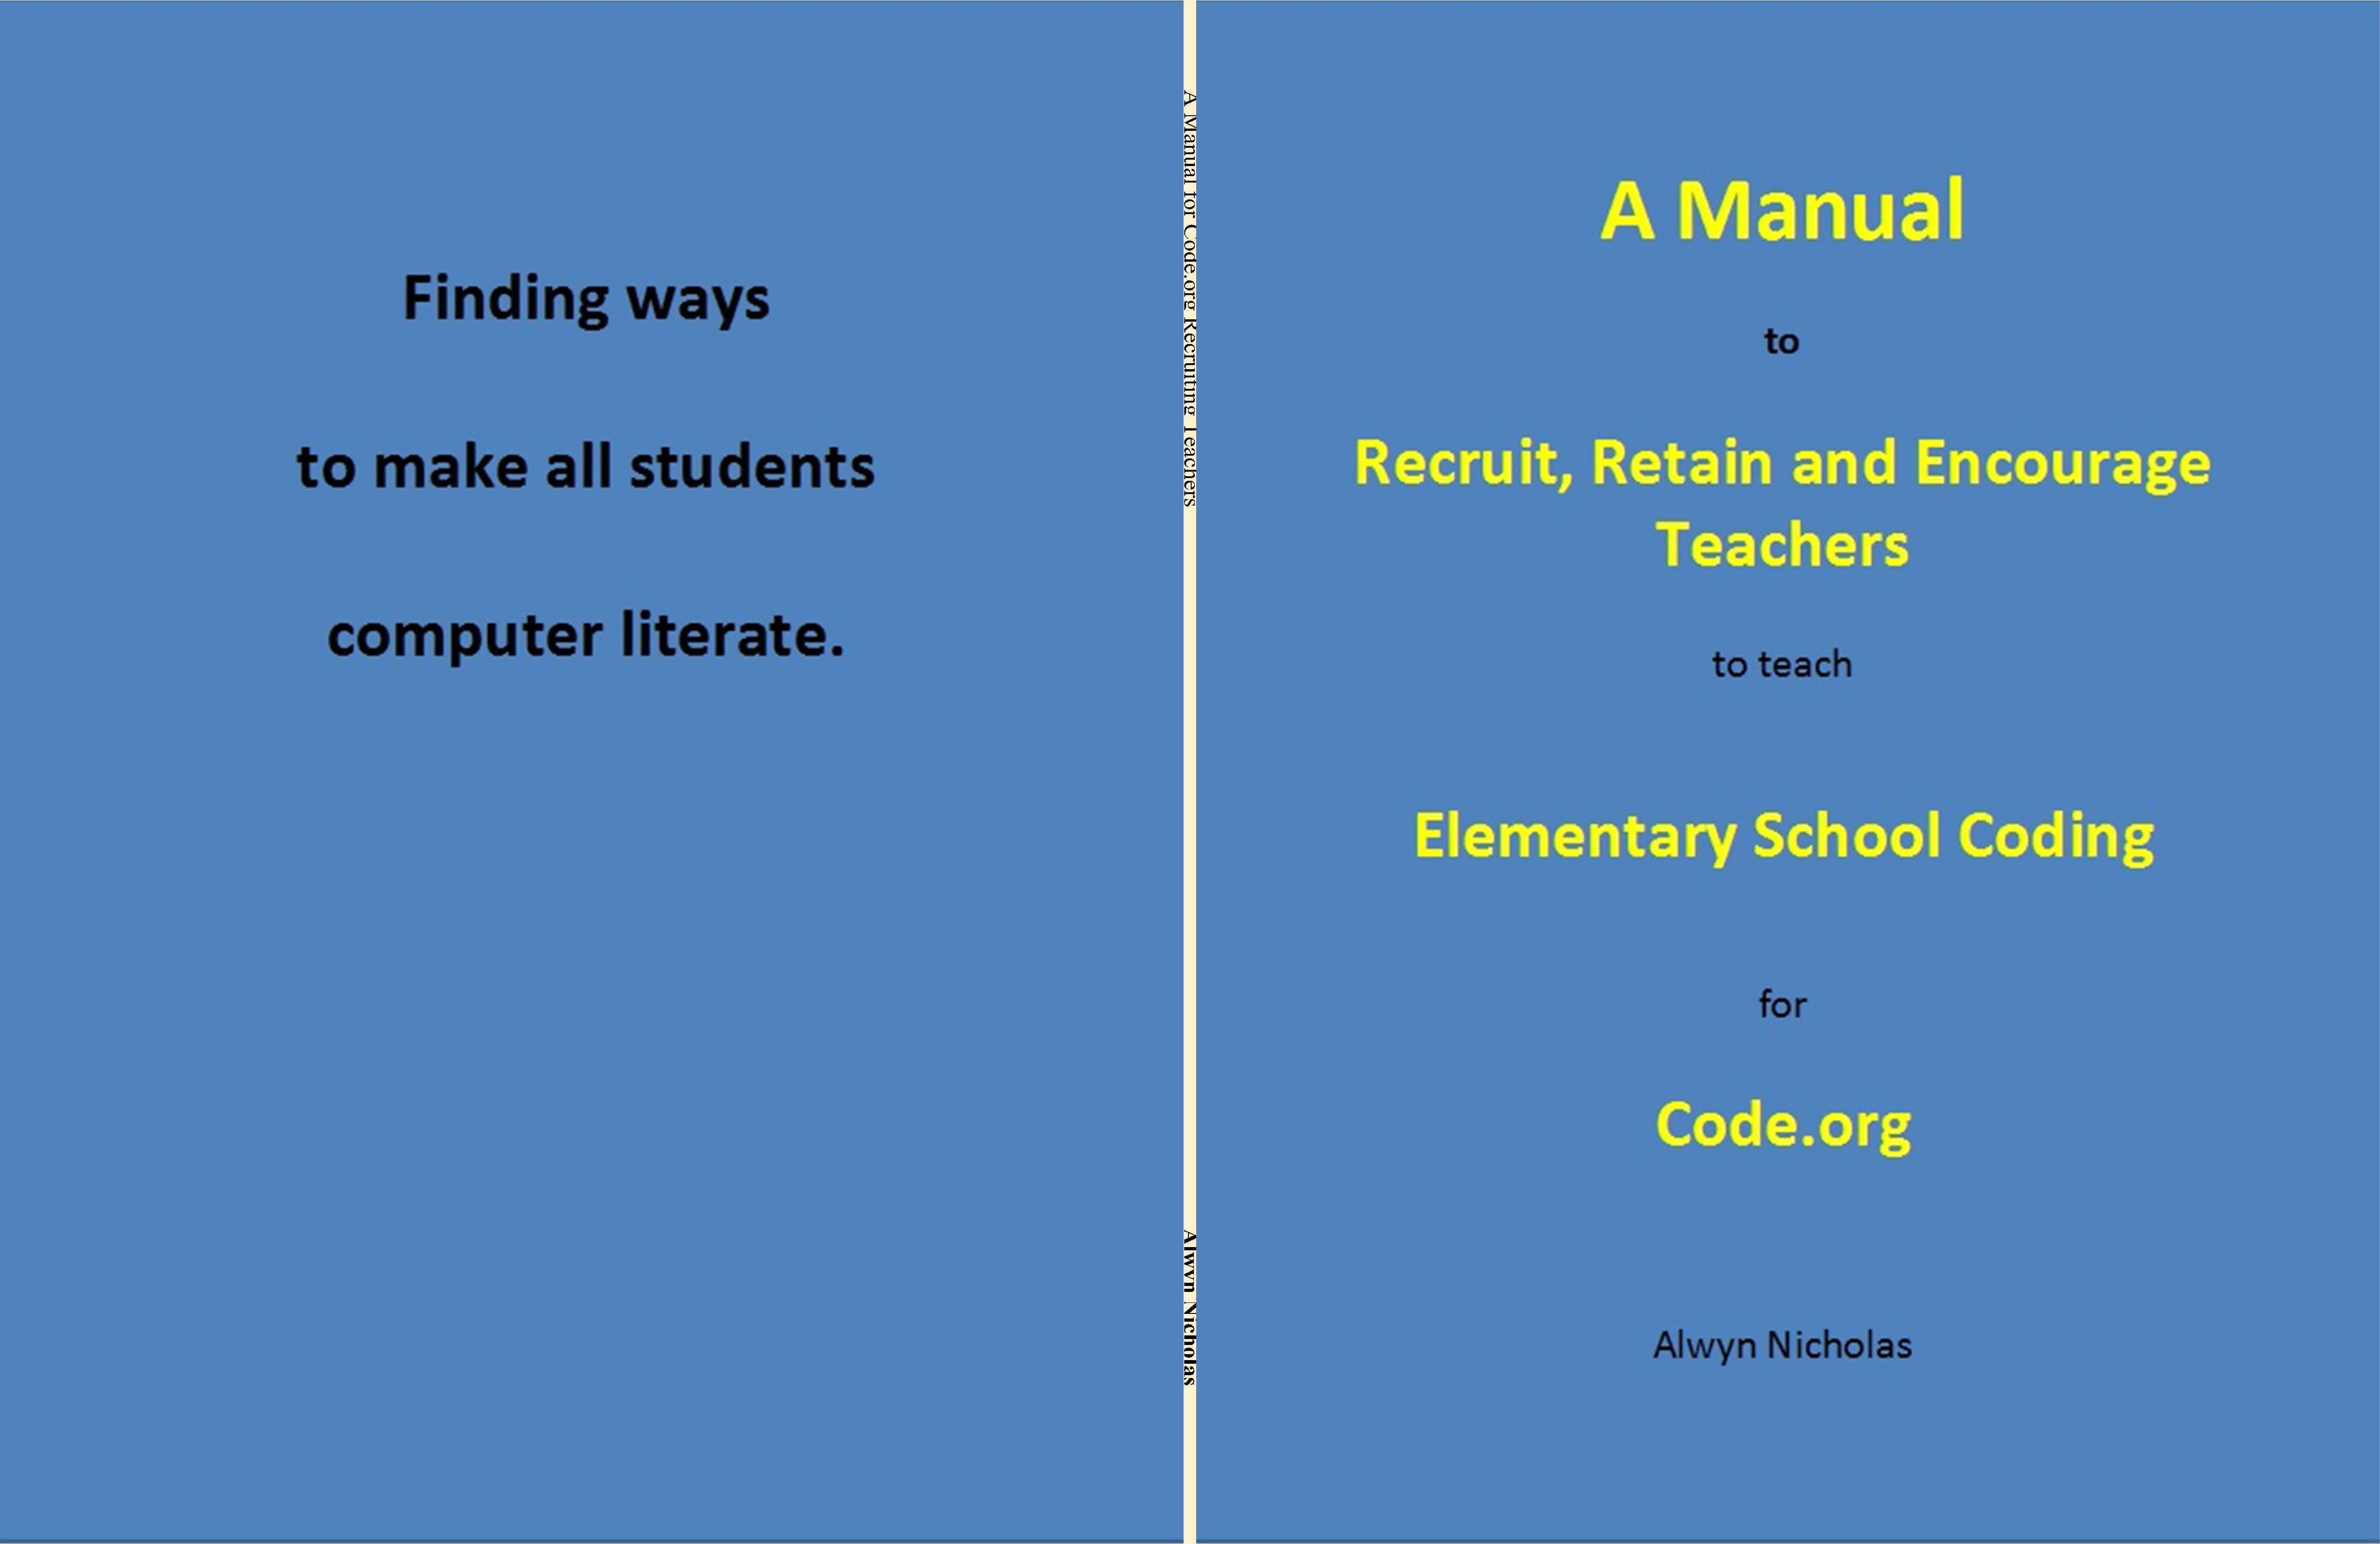 A Manual for Code.org Recruiting Teachers cover image